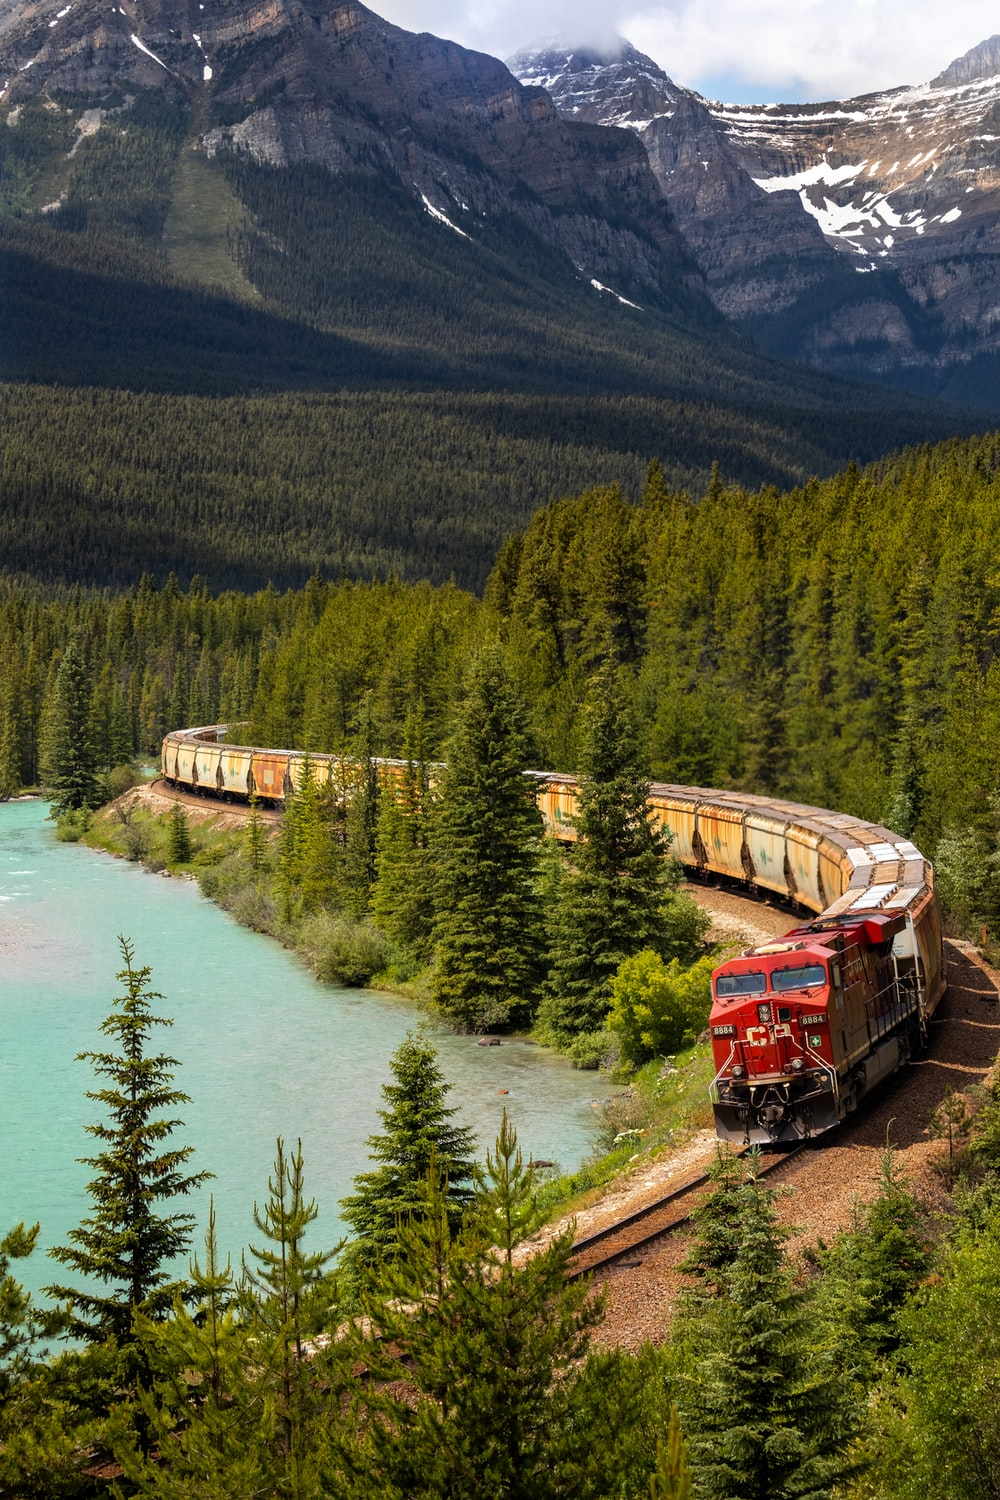 red and white train on rail near body of water during daytime